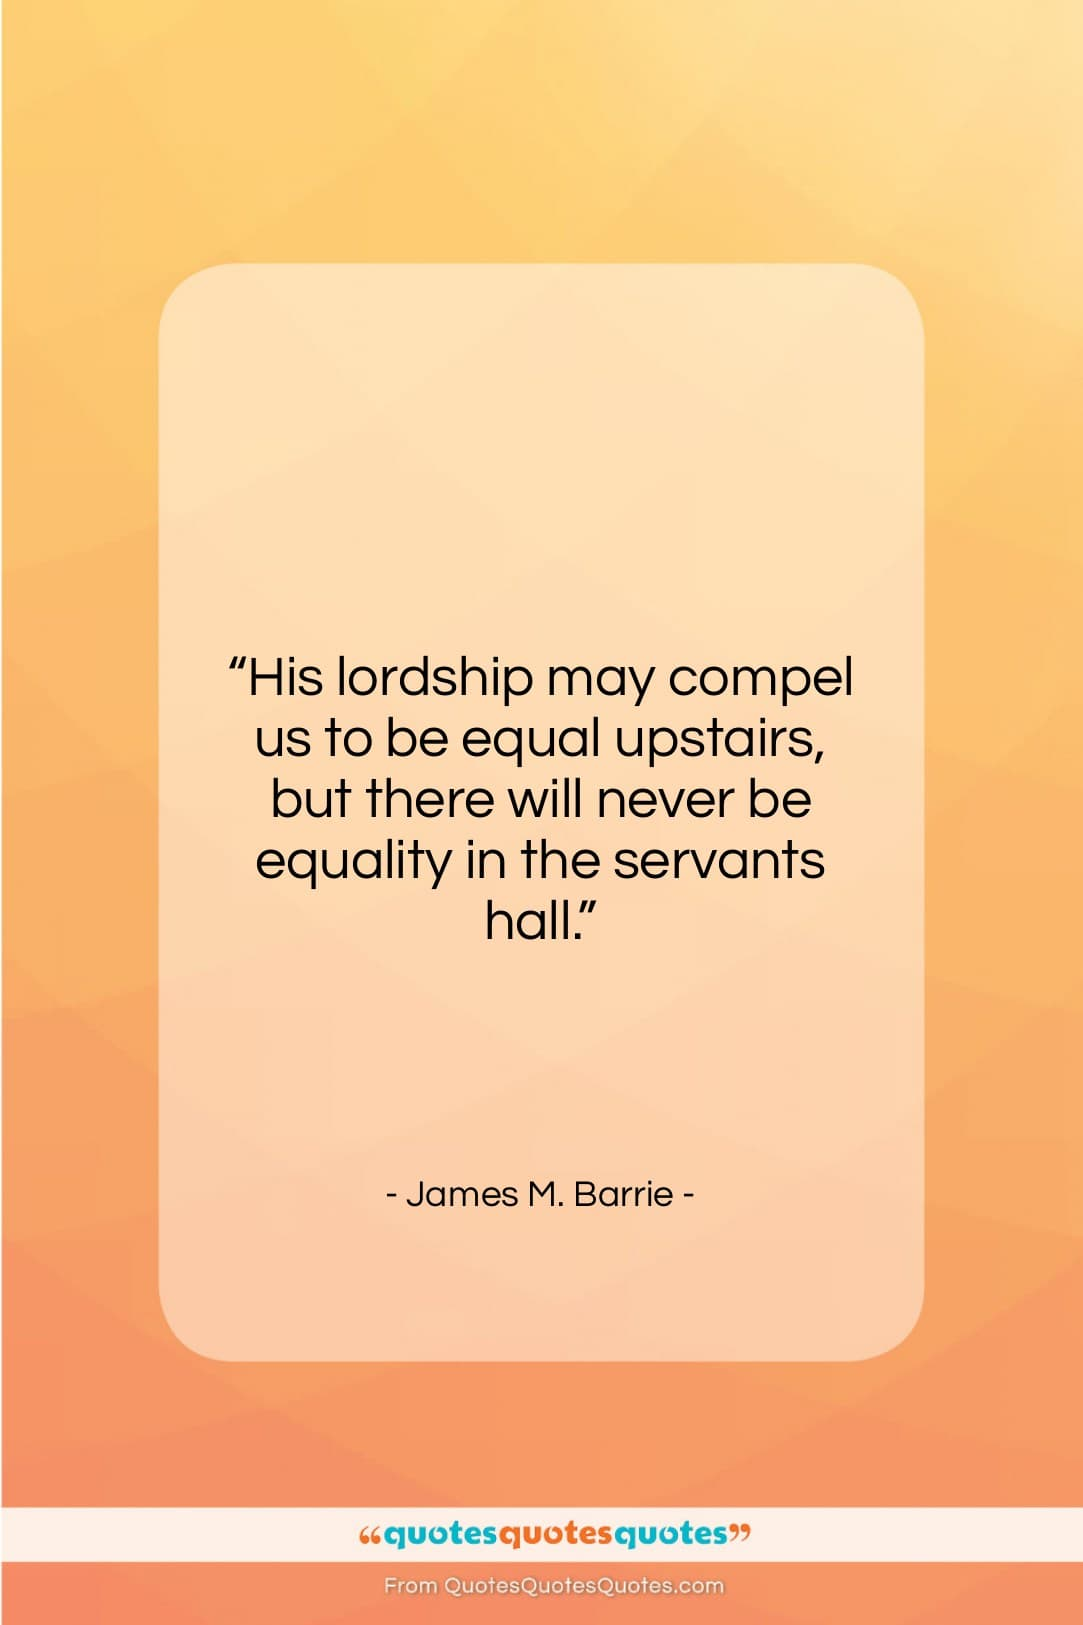 """James M. Barrie quote: """"His lordship may compel us to be…""""- at QuotesQuotesQuotes.com"""